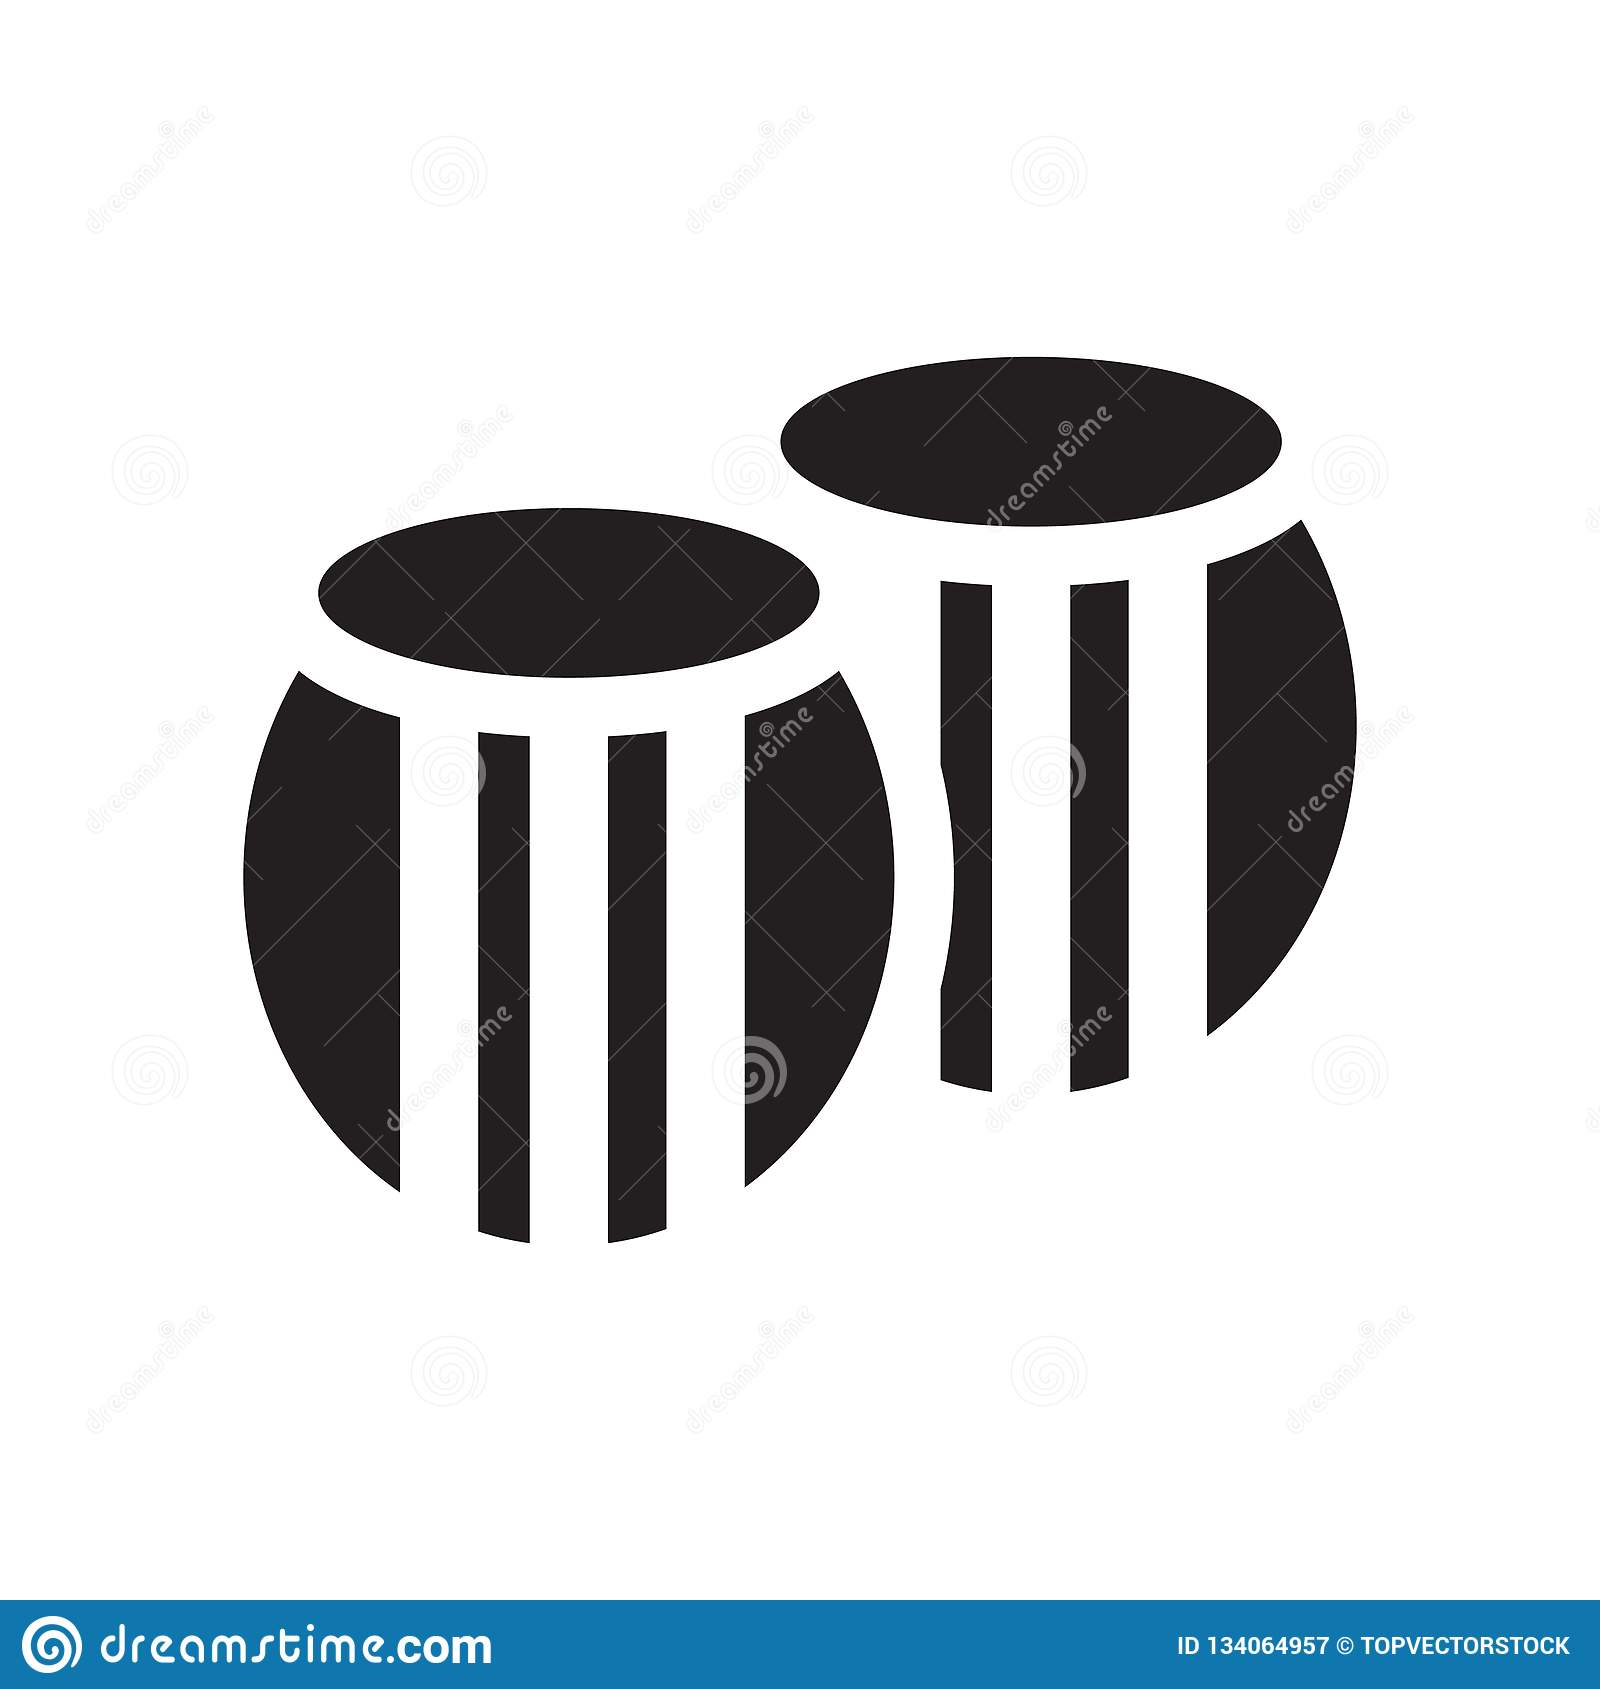 Barrel icon vector sign and symbol isolated on white background, Barrel logo concept